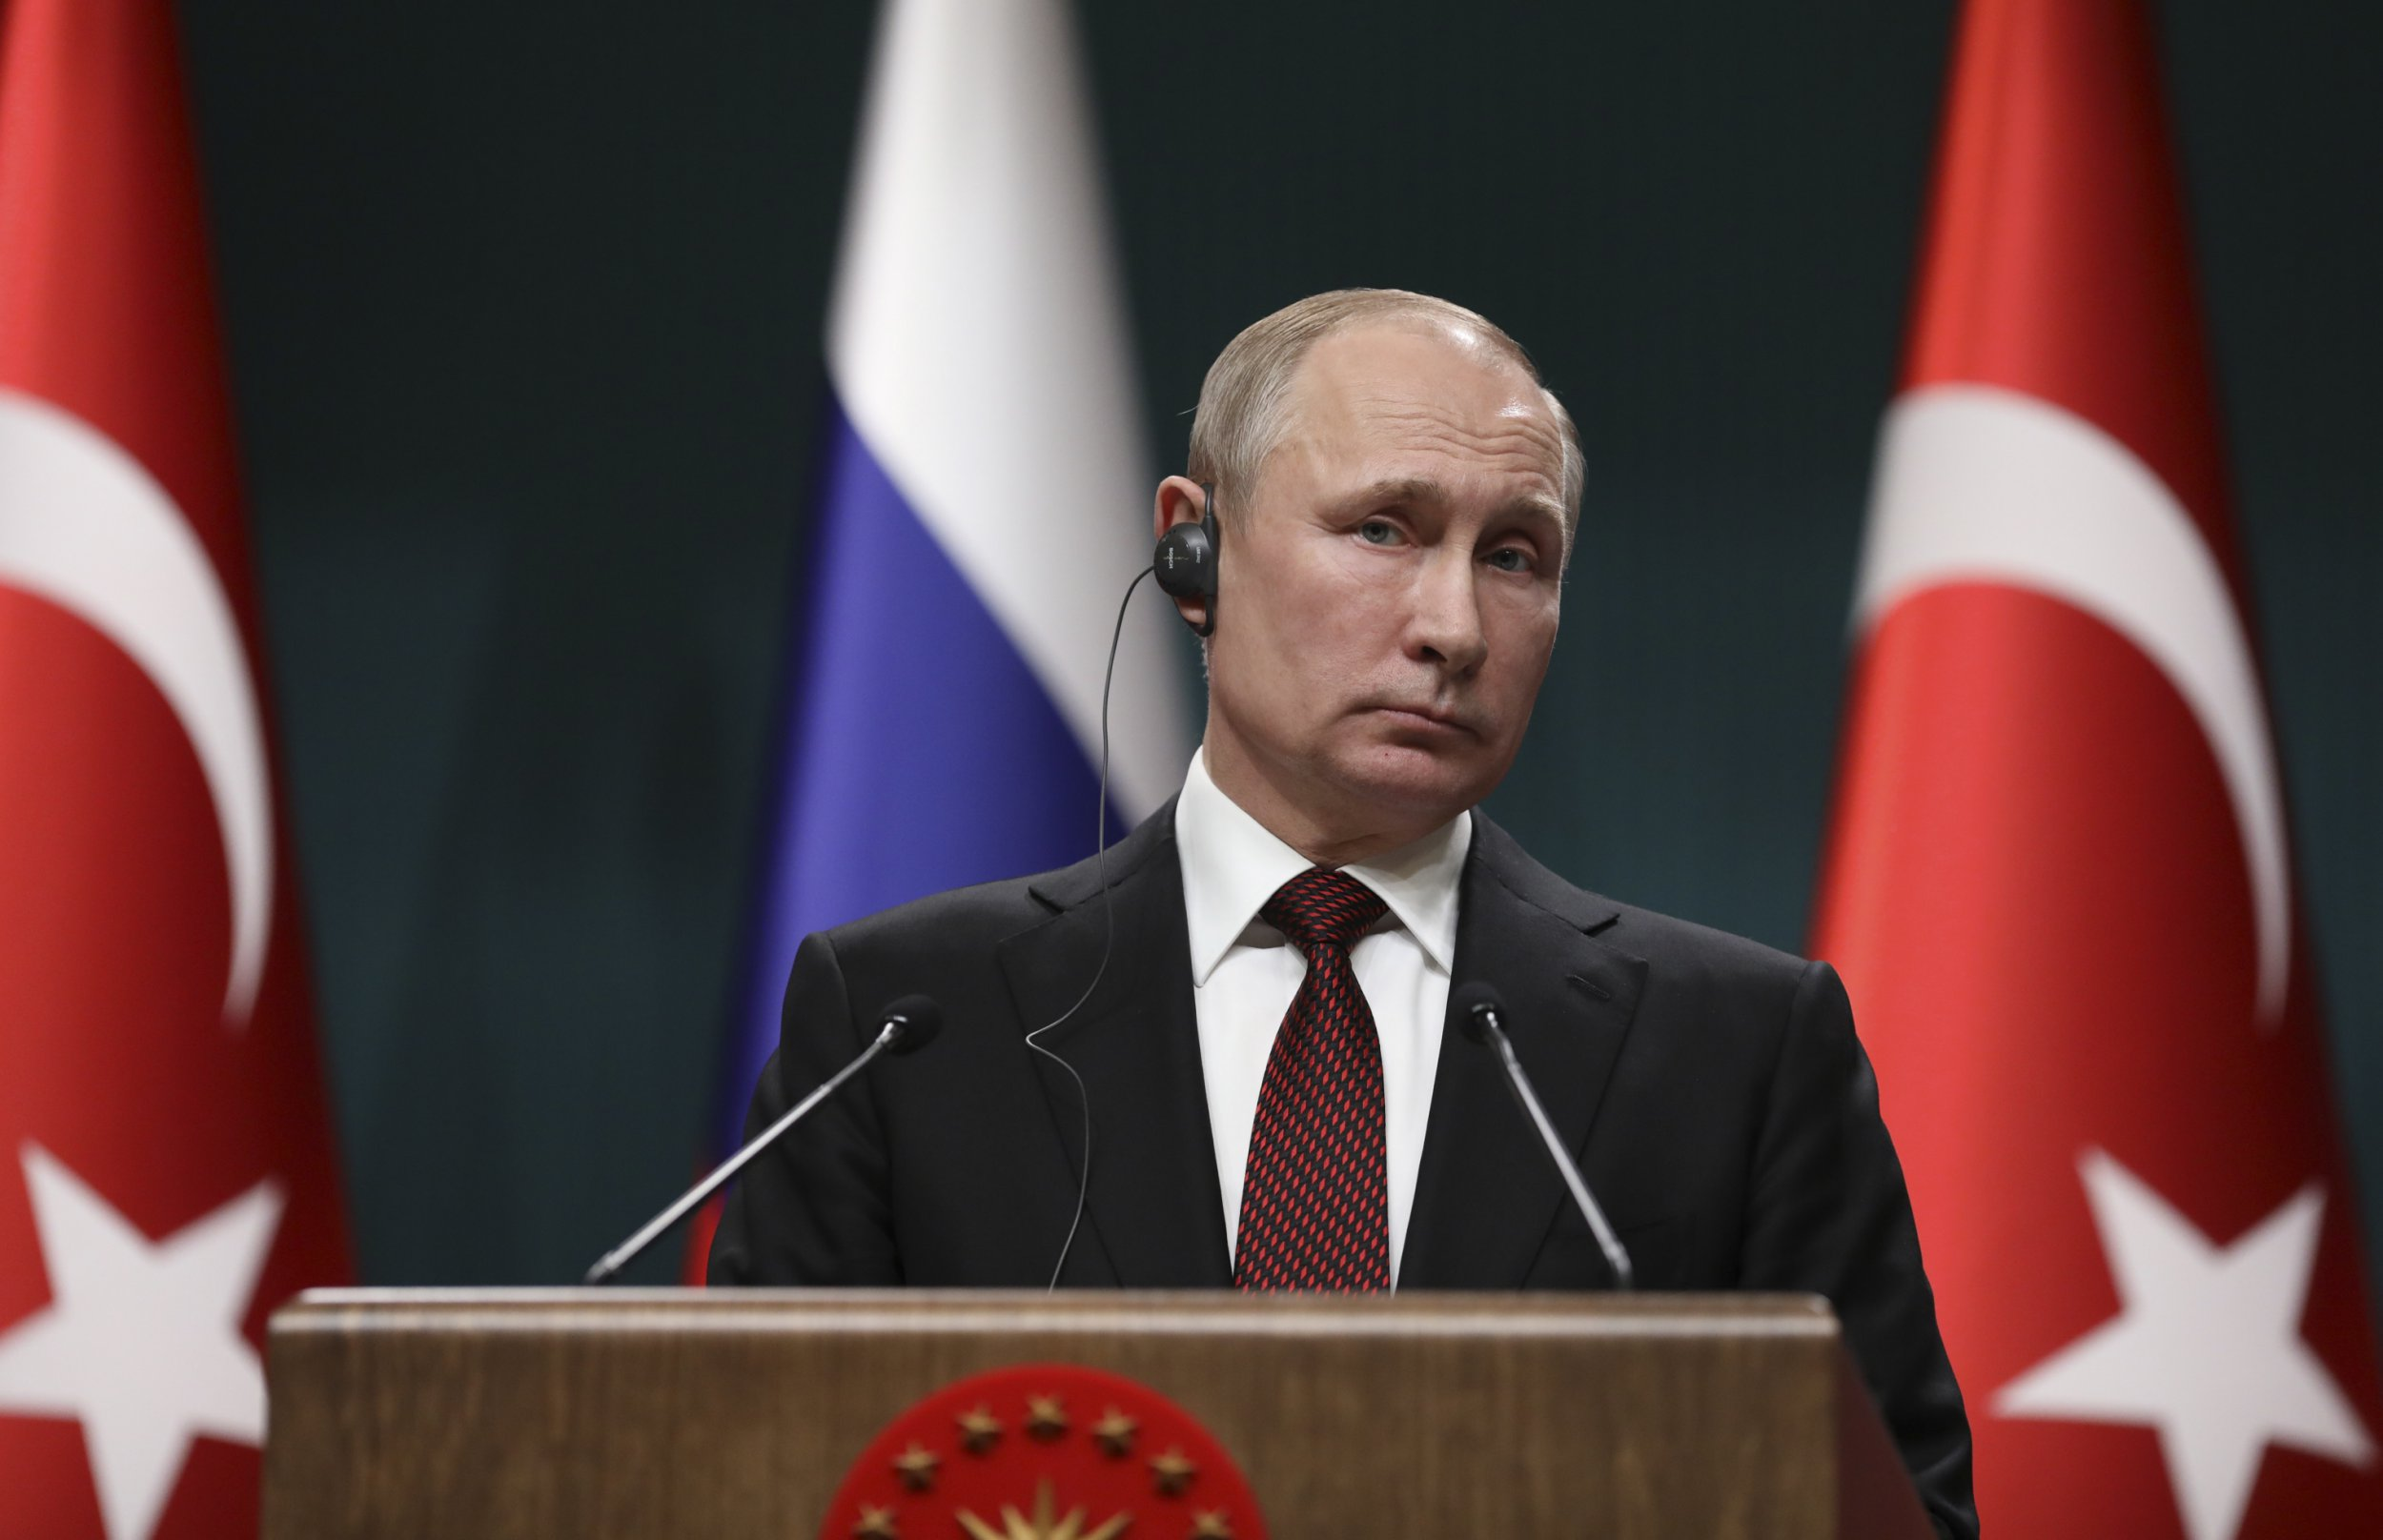 Russia's President Vladimir Putin, listens to a reporter's question during a joint news conference with Turkey's President Recep Tayyip Erdogan, following their meeting at the Presidential Palace in Ankara, Turkey, Tuesday, April 3, 2018. Russian President Vladimir Putin, on his first foreign visit since being re-elected on March 18, and Erdogan remotely gave the go-ahead for the construction of the Russian-built nuclear plant on the Mediterranean coast at Akkuyu, Turkey, as ties between the two nations deepen. (AP Photo/Burhan Ozbilici)